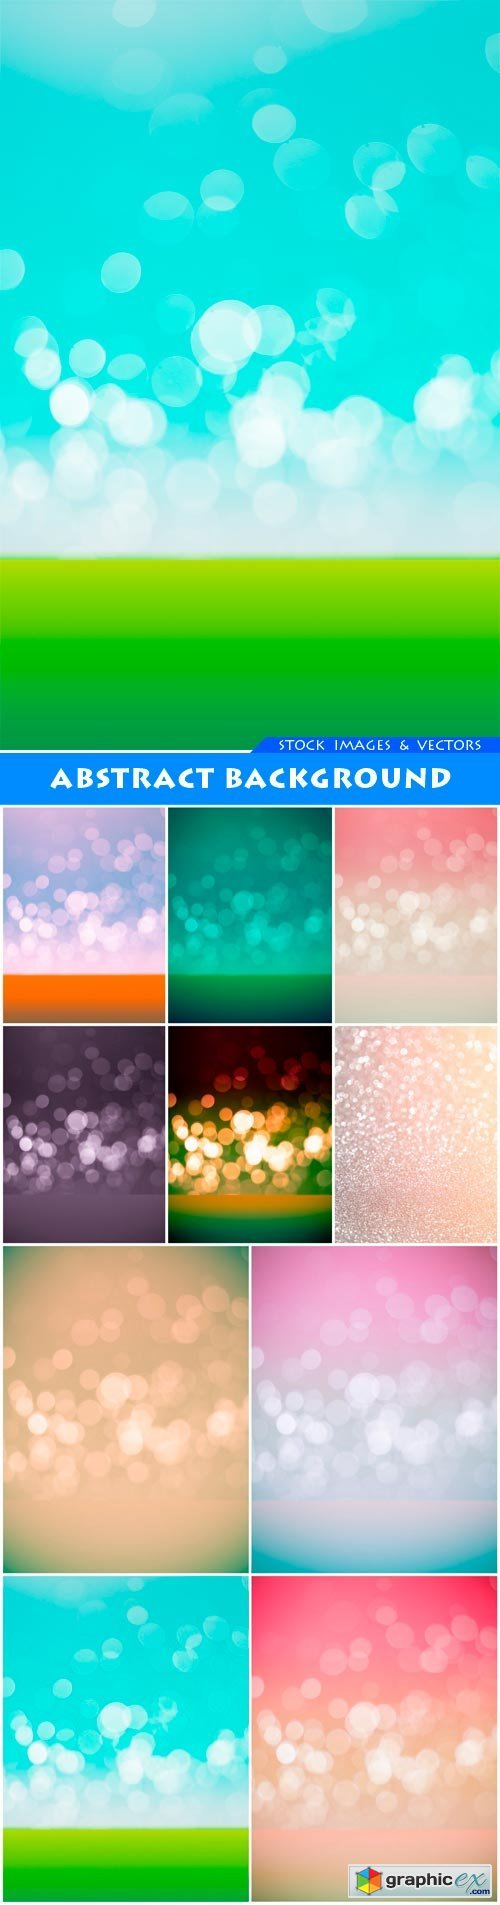 Abstract background 9X JPEG